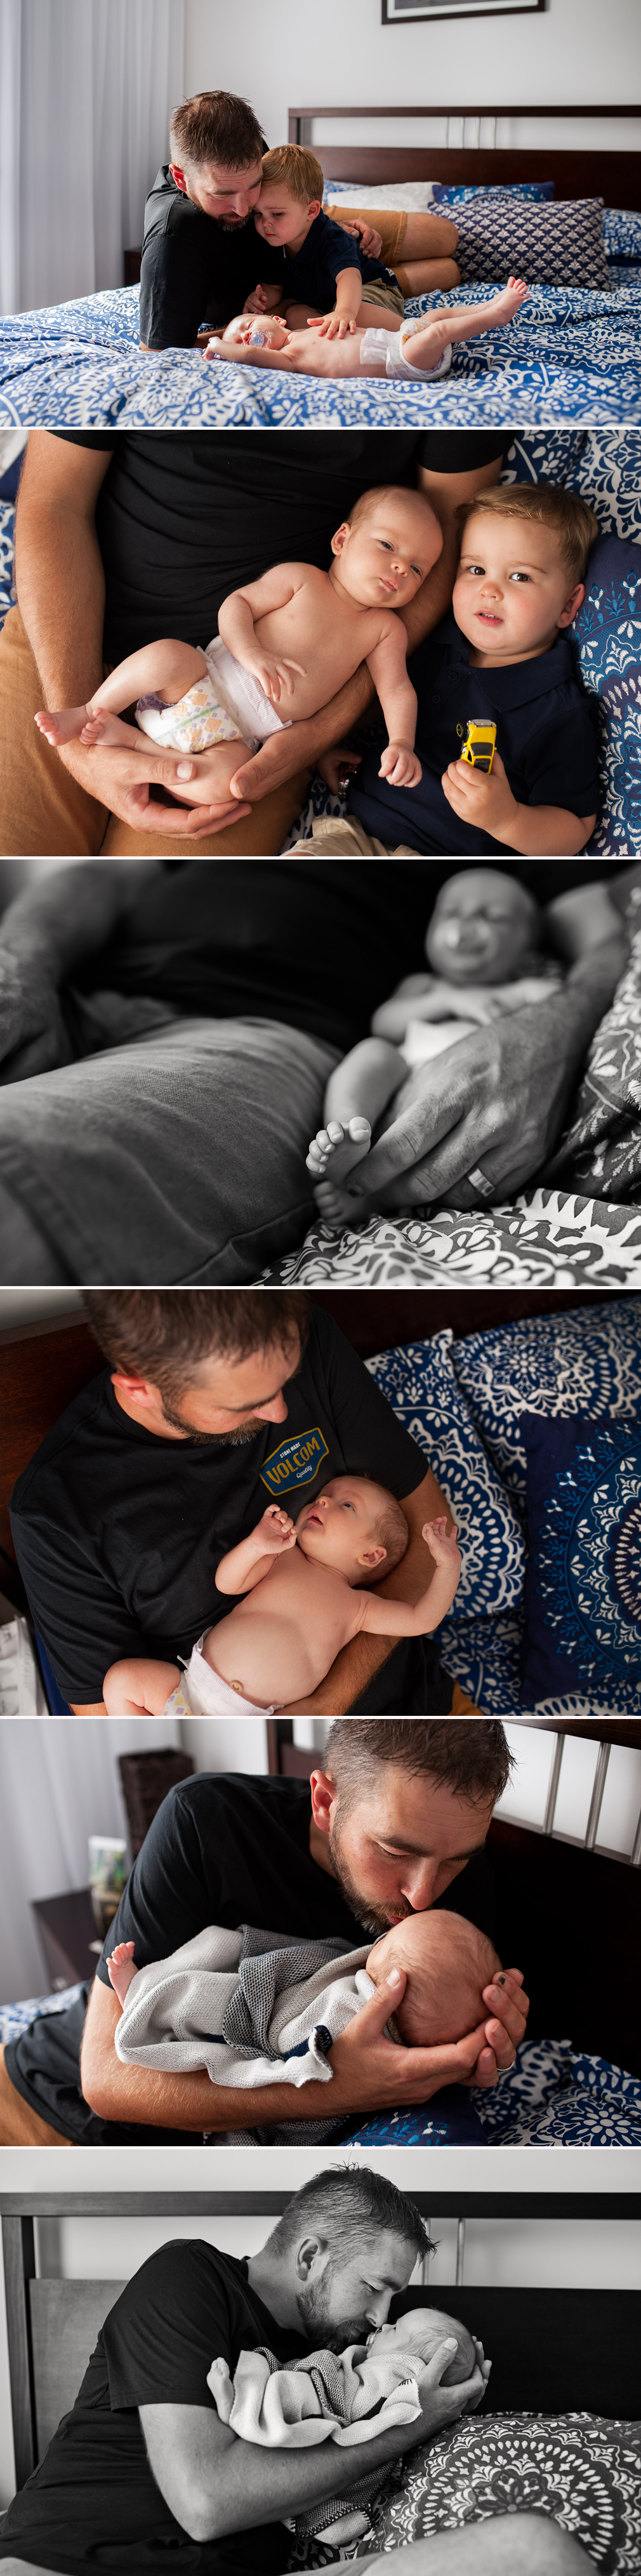 Newborn-baby-boy-at-home-lifestyle-photography-4